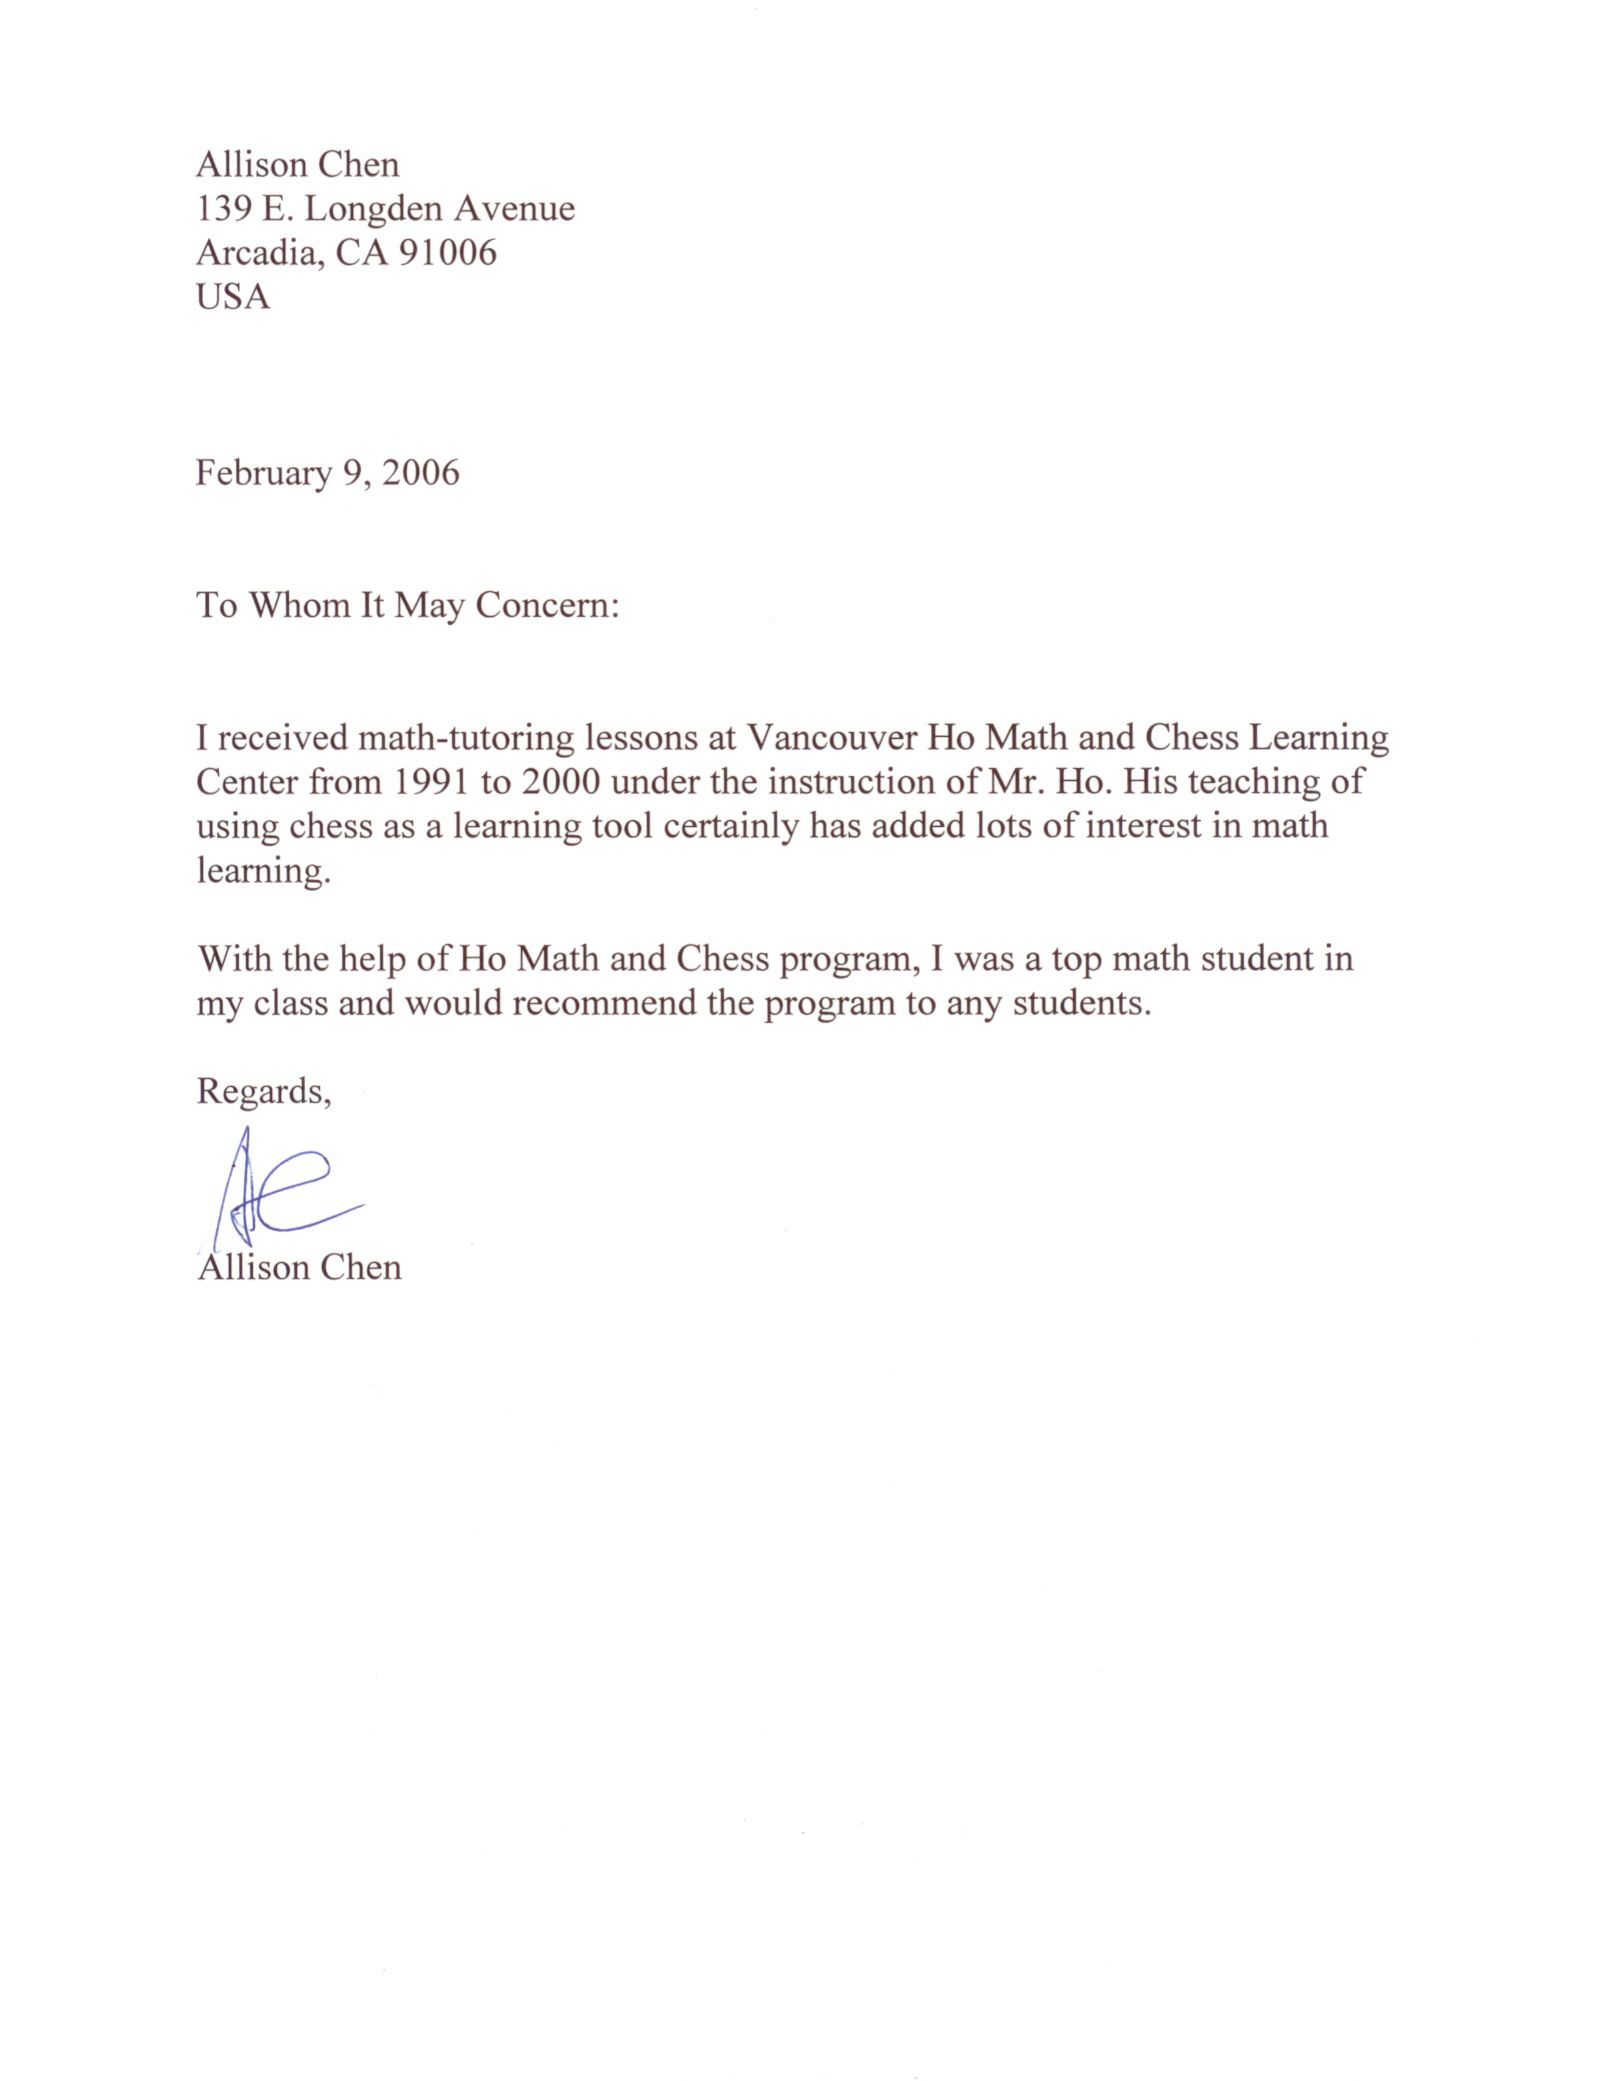 Recommendation letter sample for teacher from parent httpwww recommendation letter sample for teacher from parent httpresumecareerforecommendation letter sample for teacher from parent expocarfo Choice Image